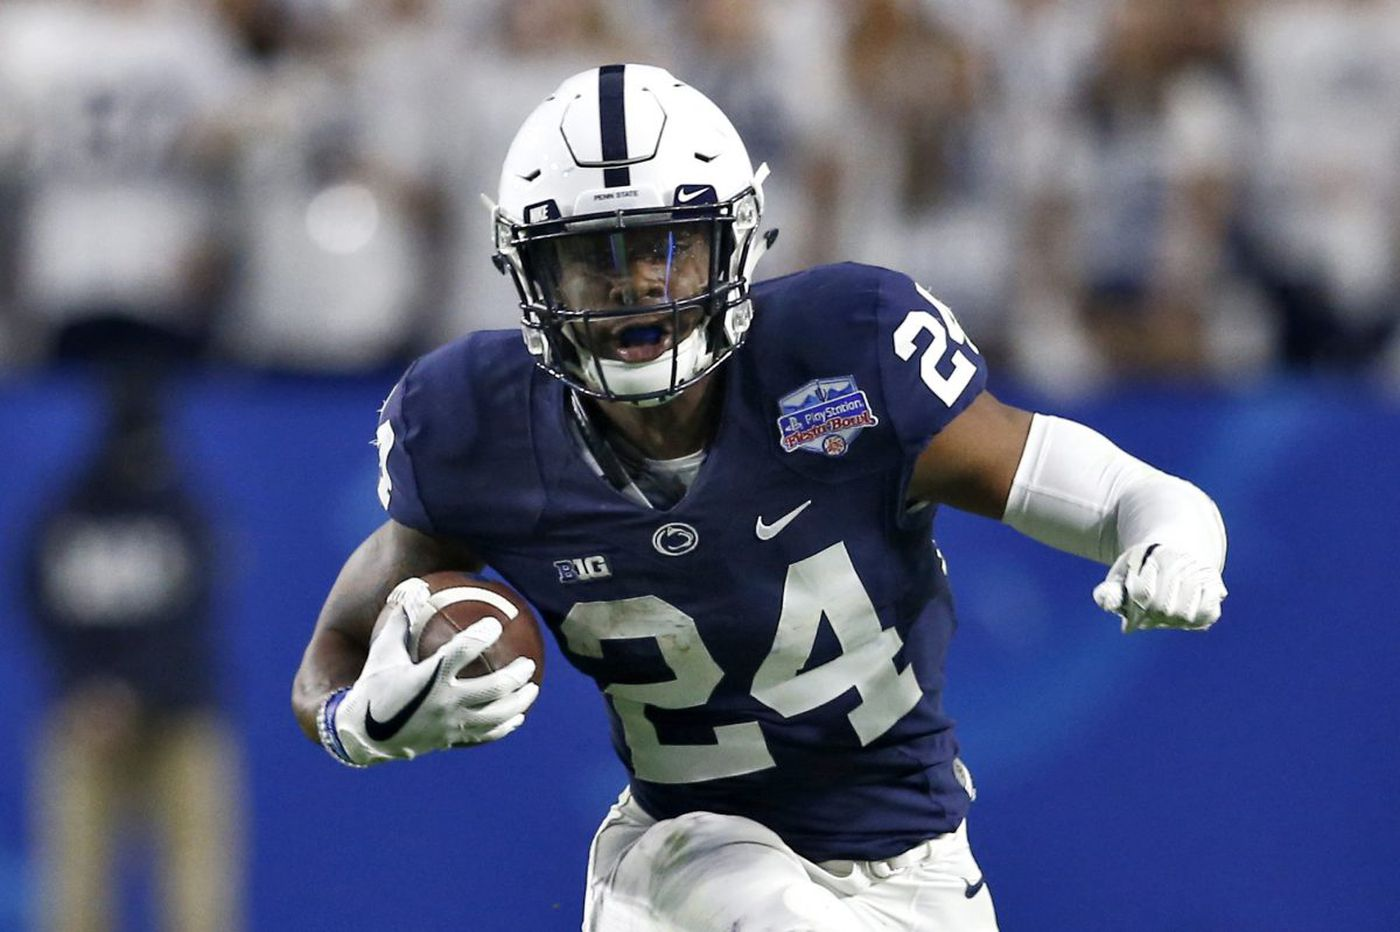 Penn State coach James Franklin sees Miles Sanders as a team leader